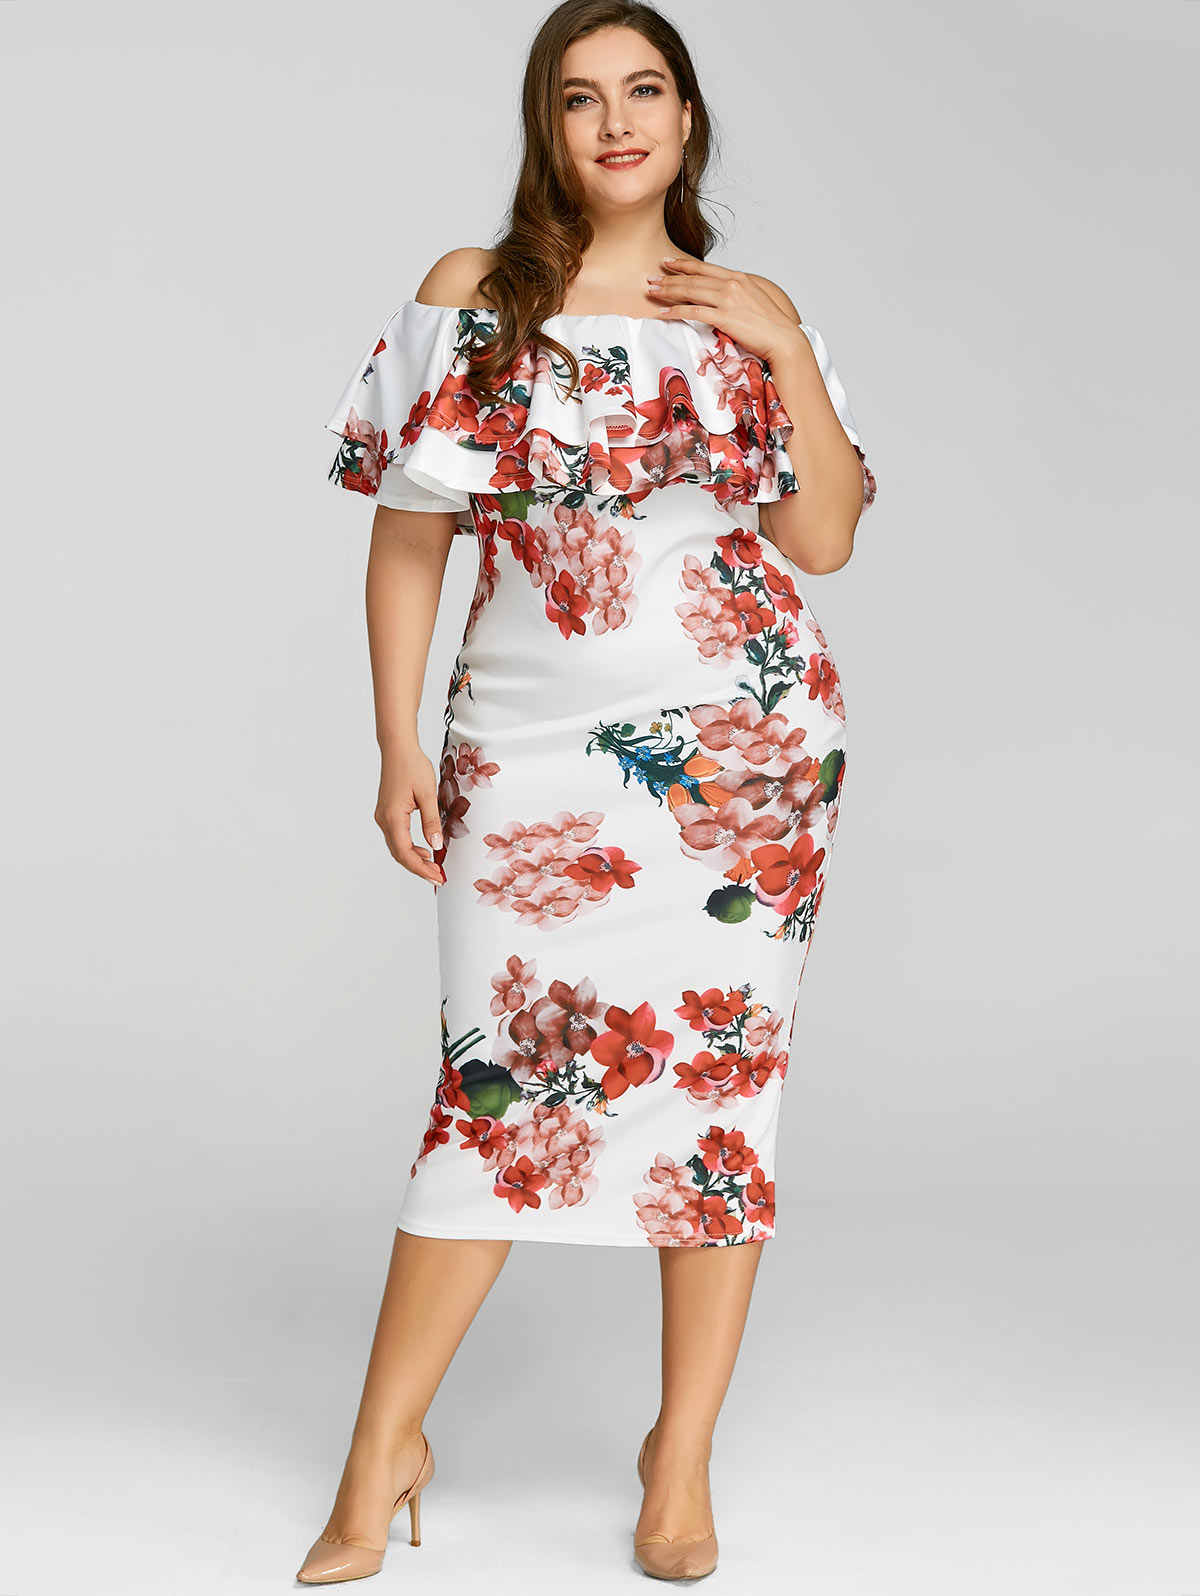 bf2deb60671c5 Gamiss Casual Ladies Elegant Bodycon Dress Plus Size 5XL Floral Print Ruffle  Dress Off The Shoulder